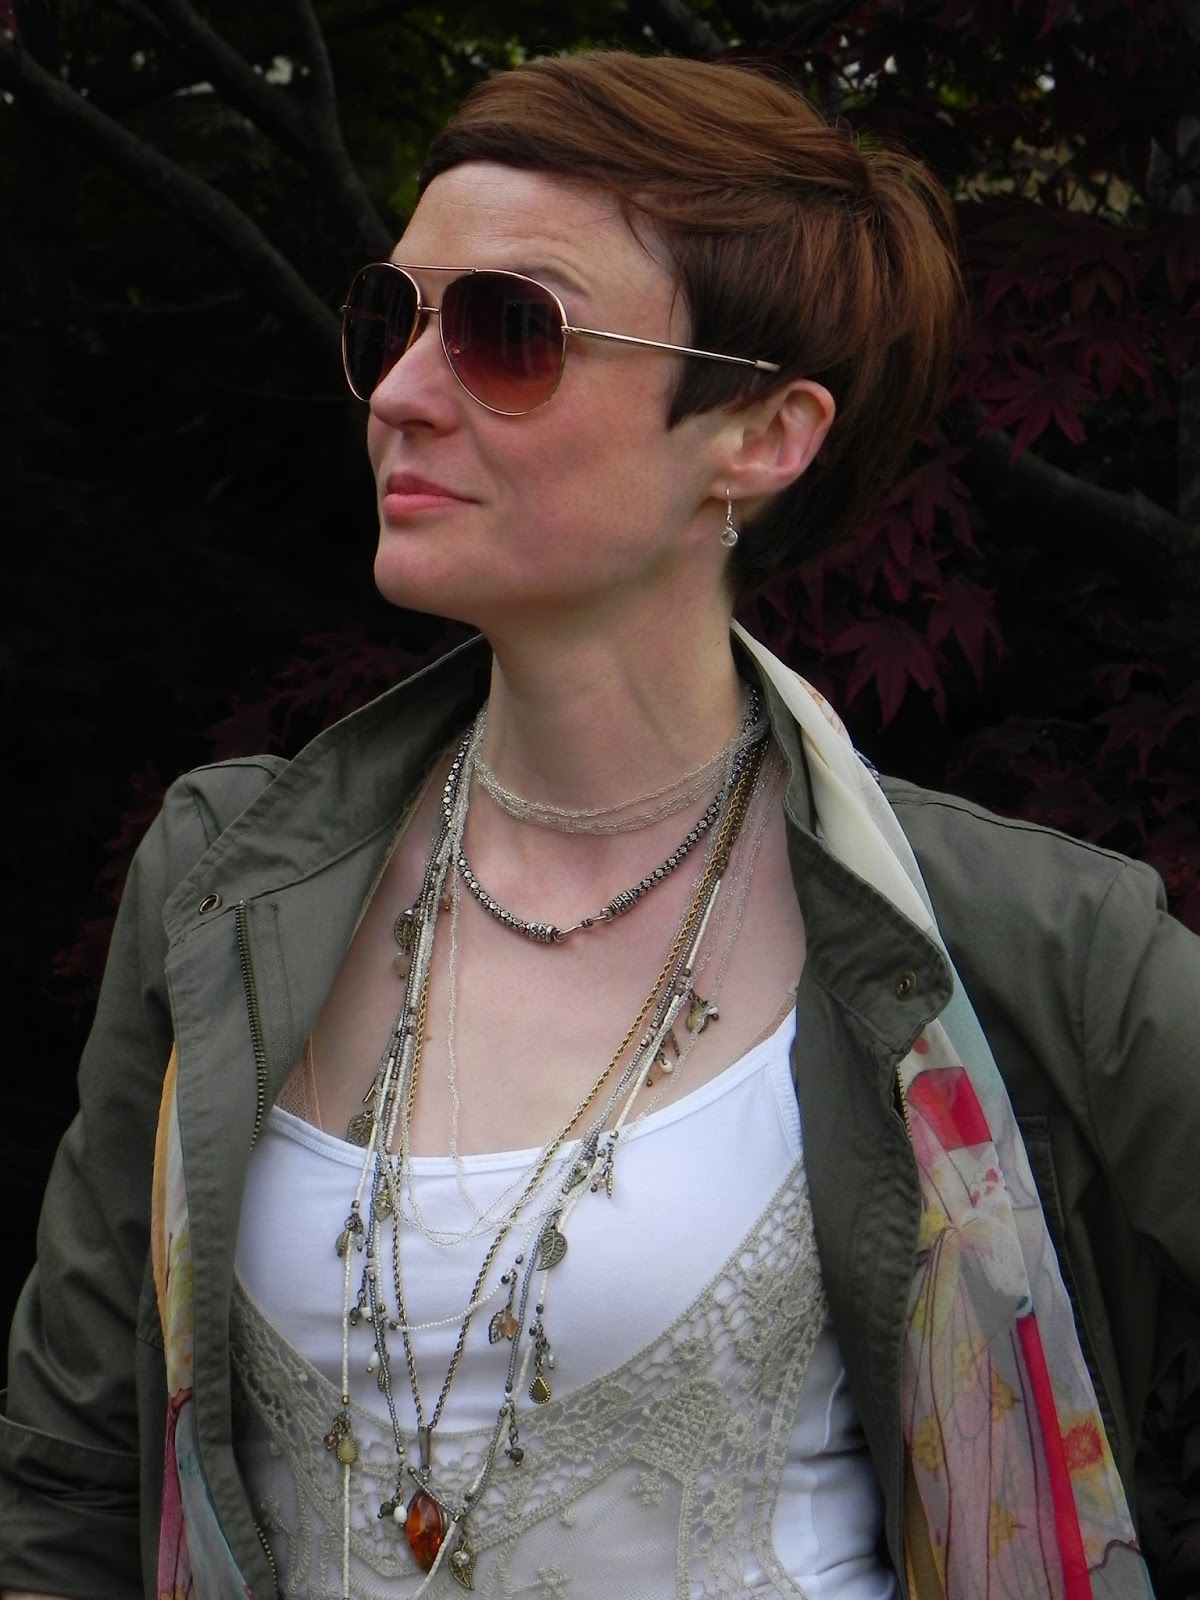 Aviators and layered necklaces